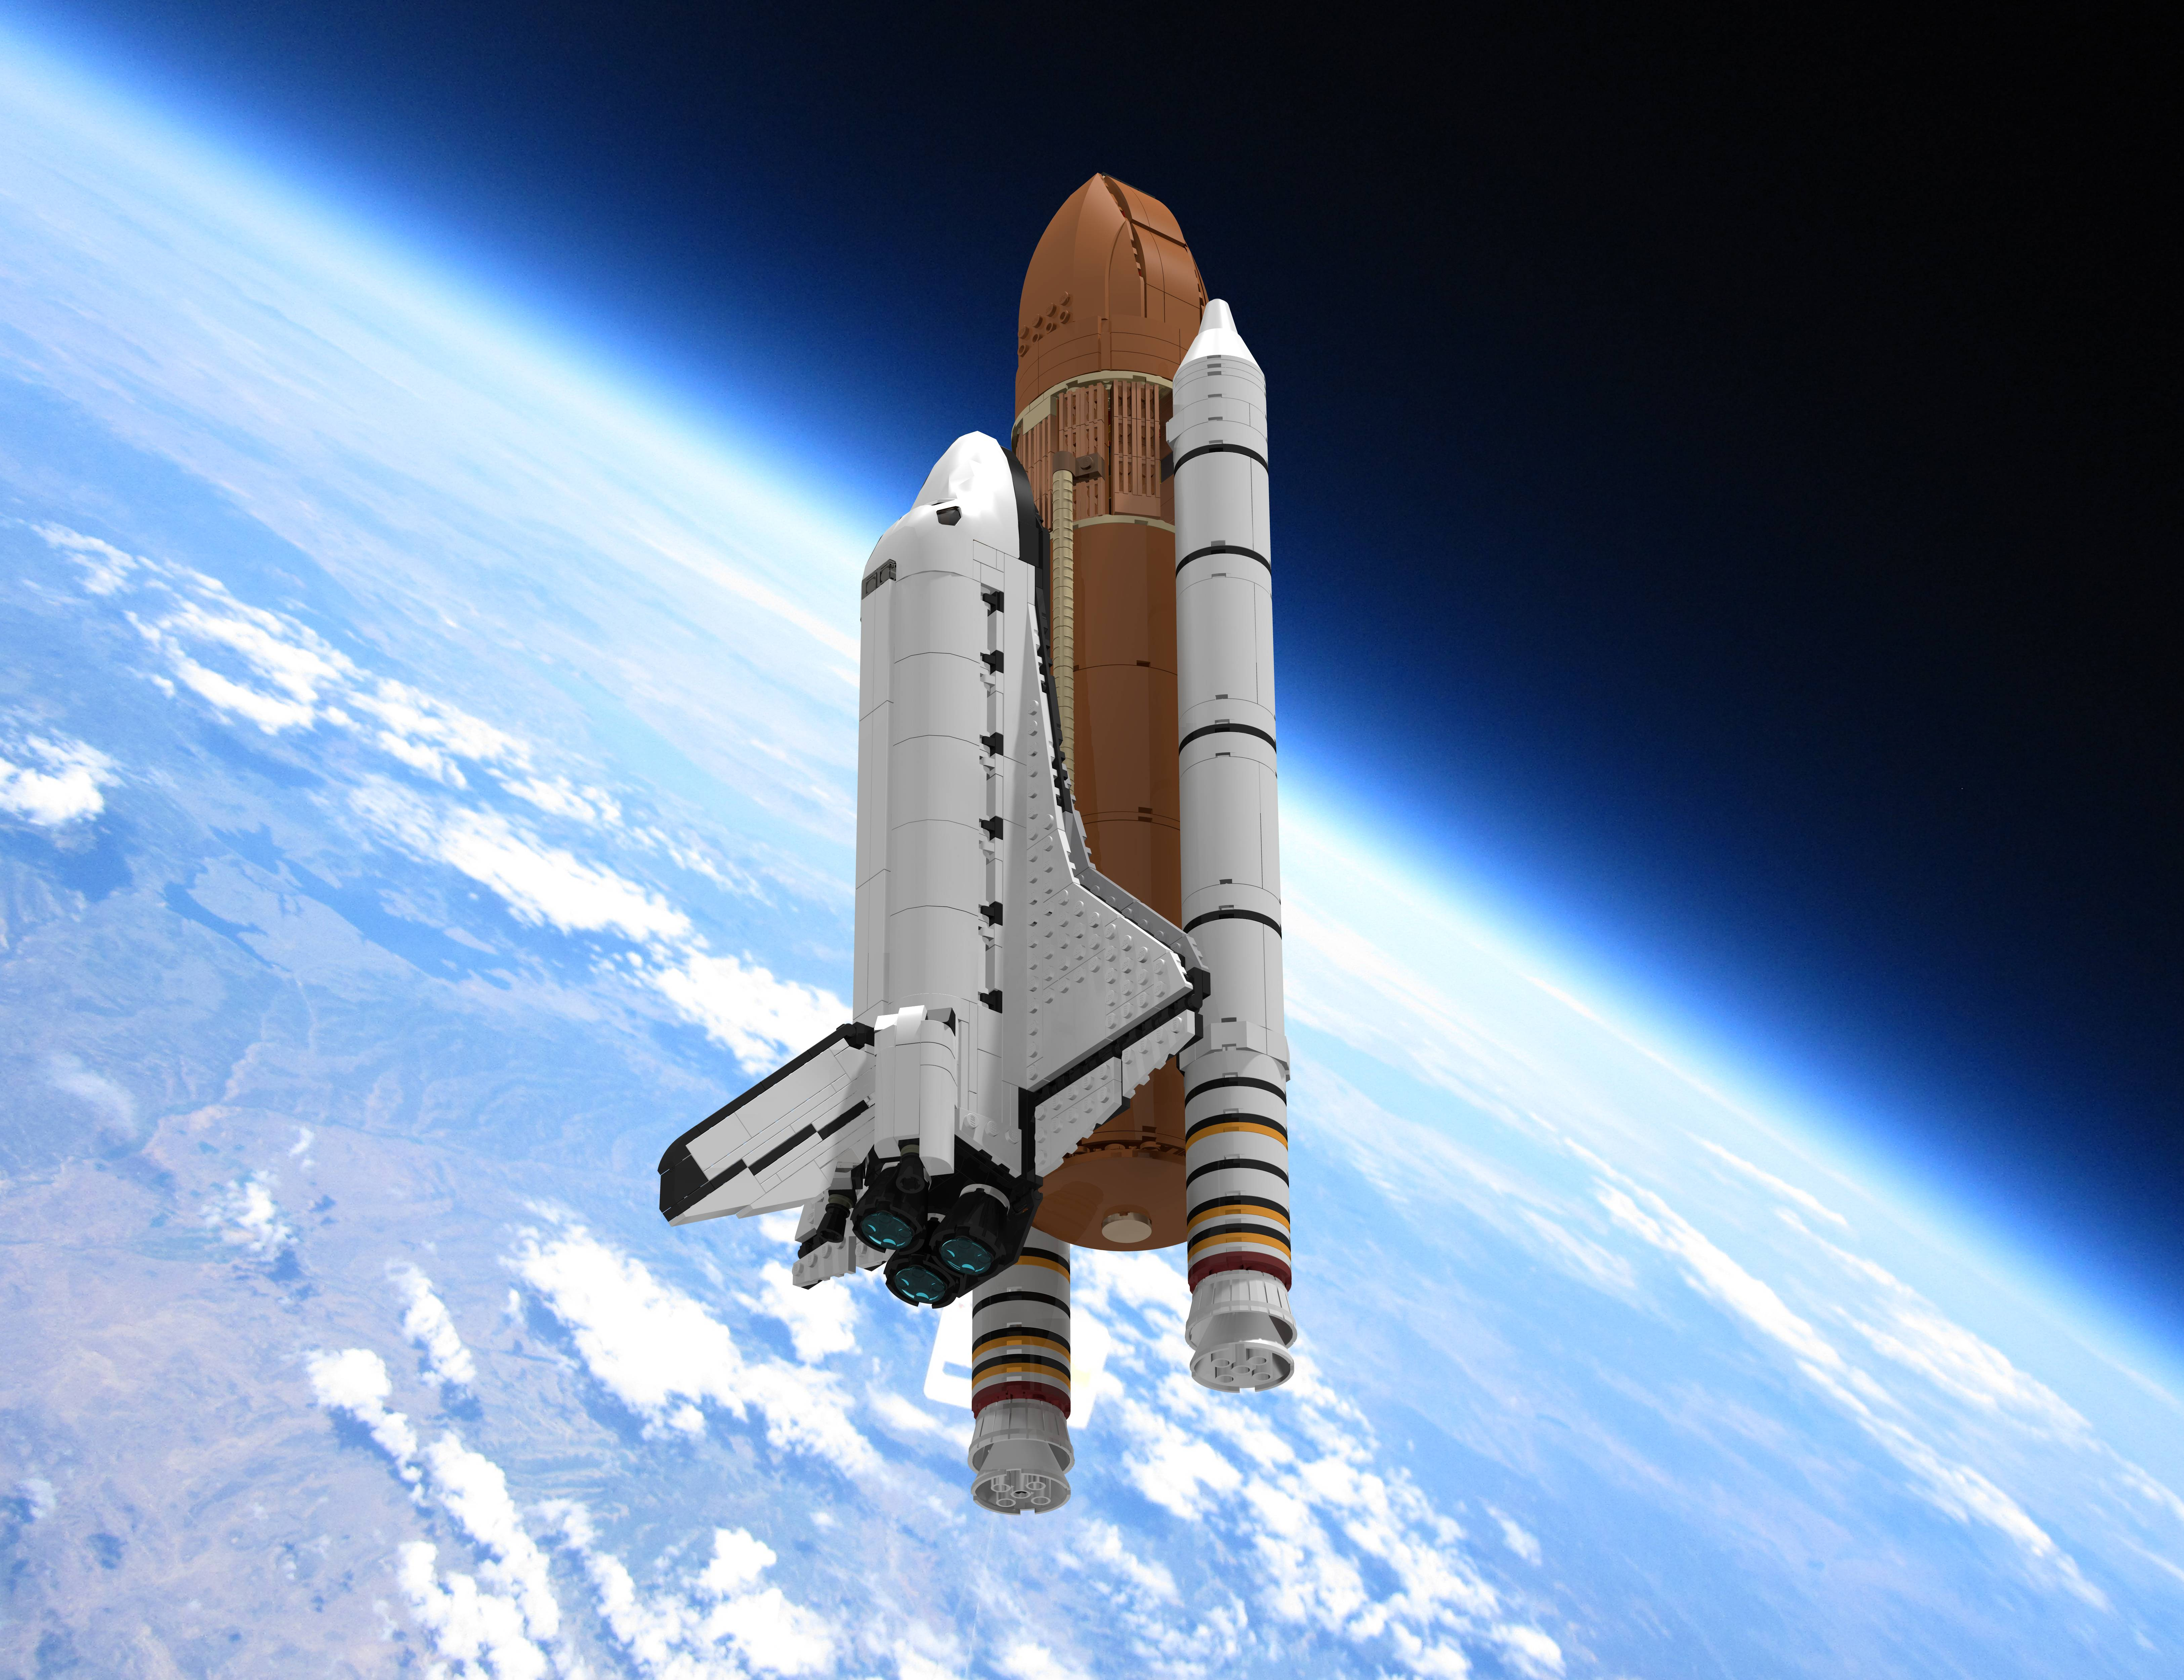 space shuttle gallery - photo #39